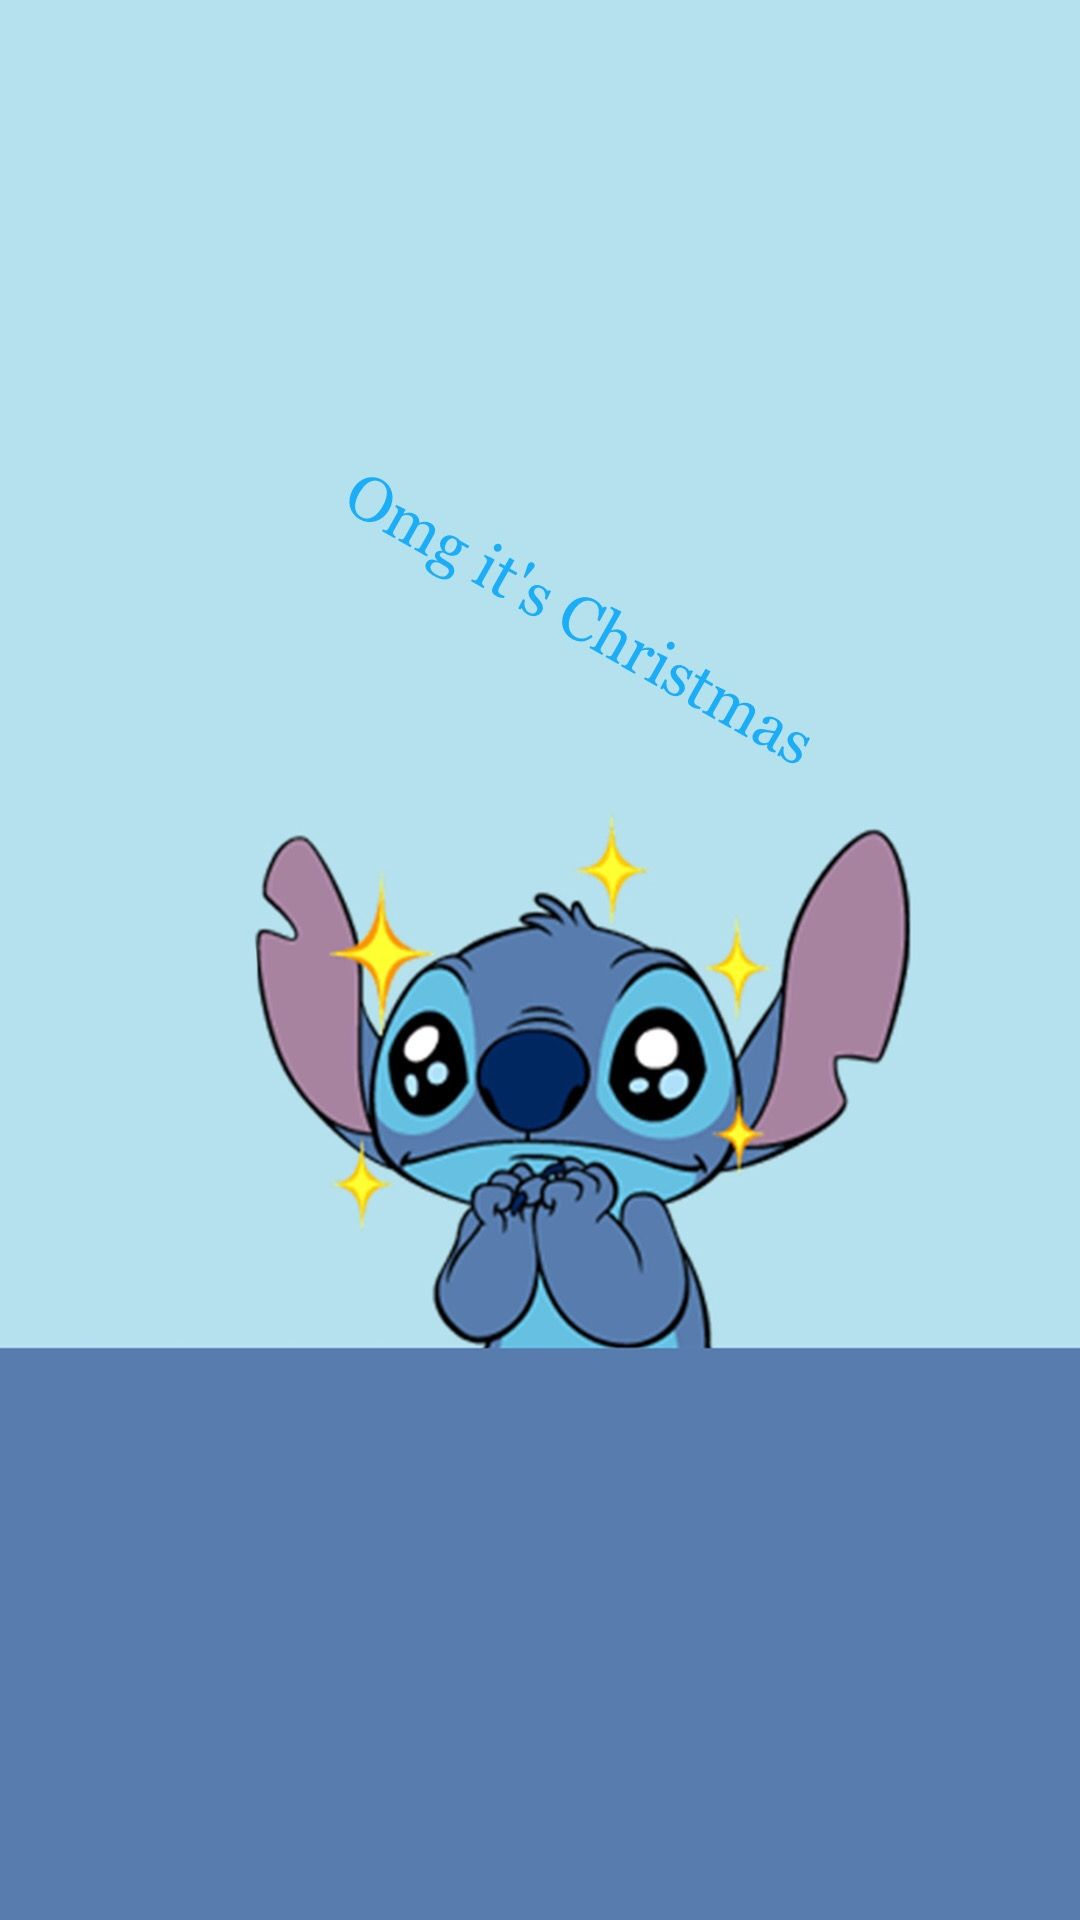 Pin By Ifvana P On My Obsession Cute Wallpapers Cartoon Wallpaper Iphone Stitch Disney